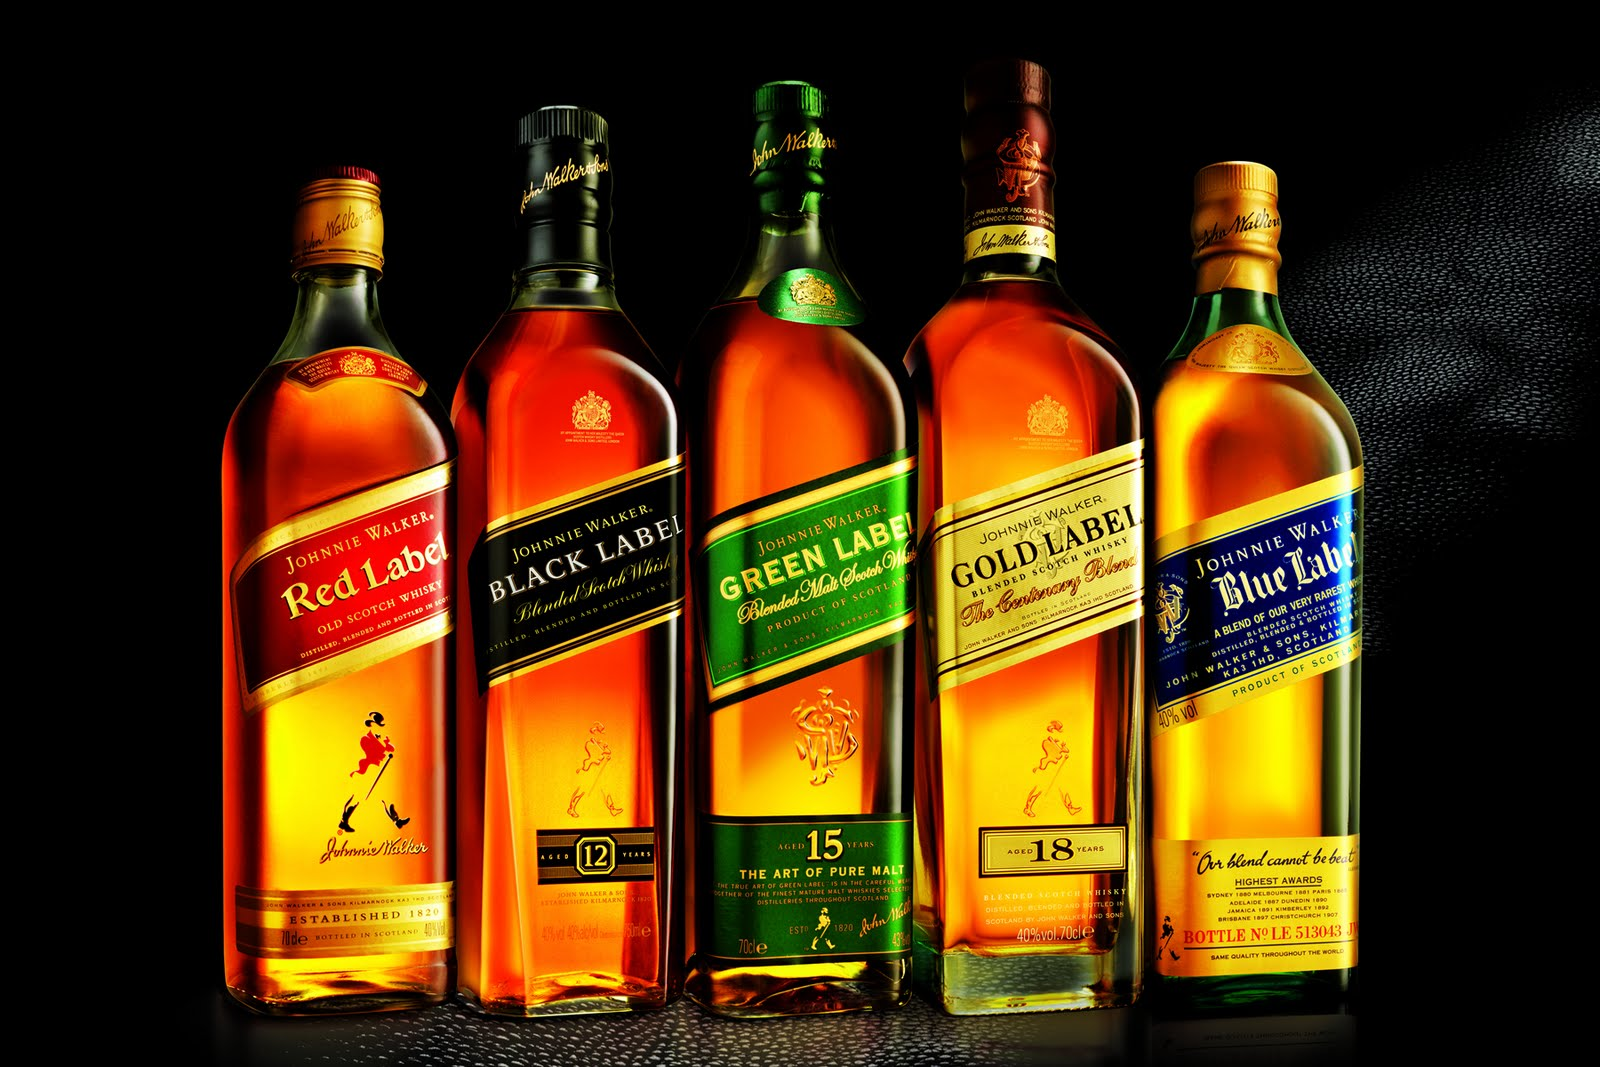 http://3.bp.blogspot.com/-K5HsTwr0YGc/T5cYY0b6JWI/AAAAAAAA2Fc/voAW0ABtzao/s1600/johnnie-walker-scotch-whiskey-escoces.jpg